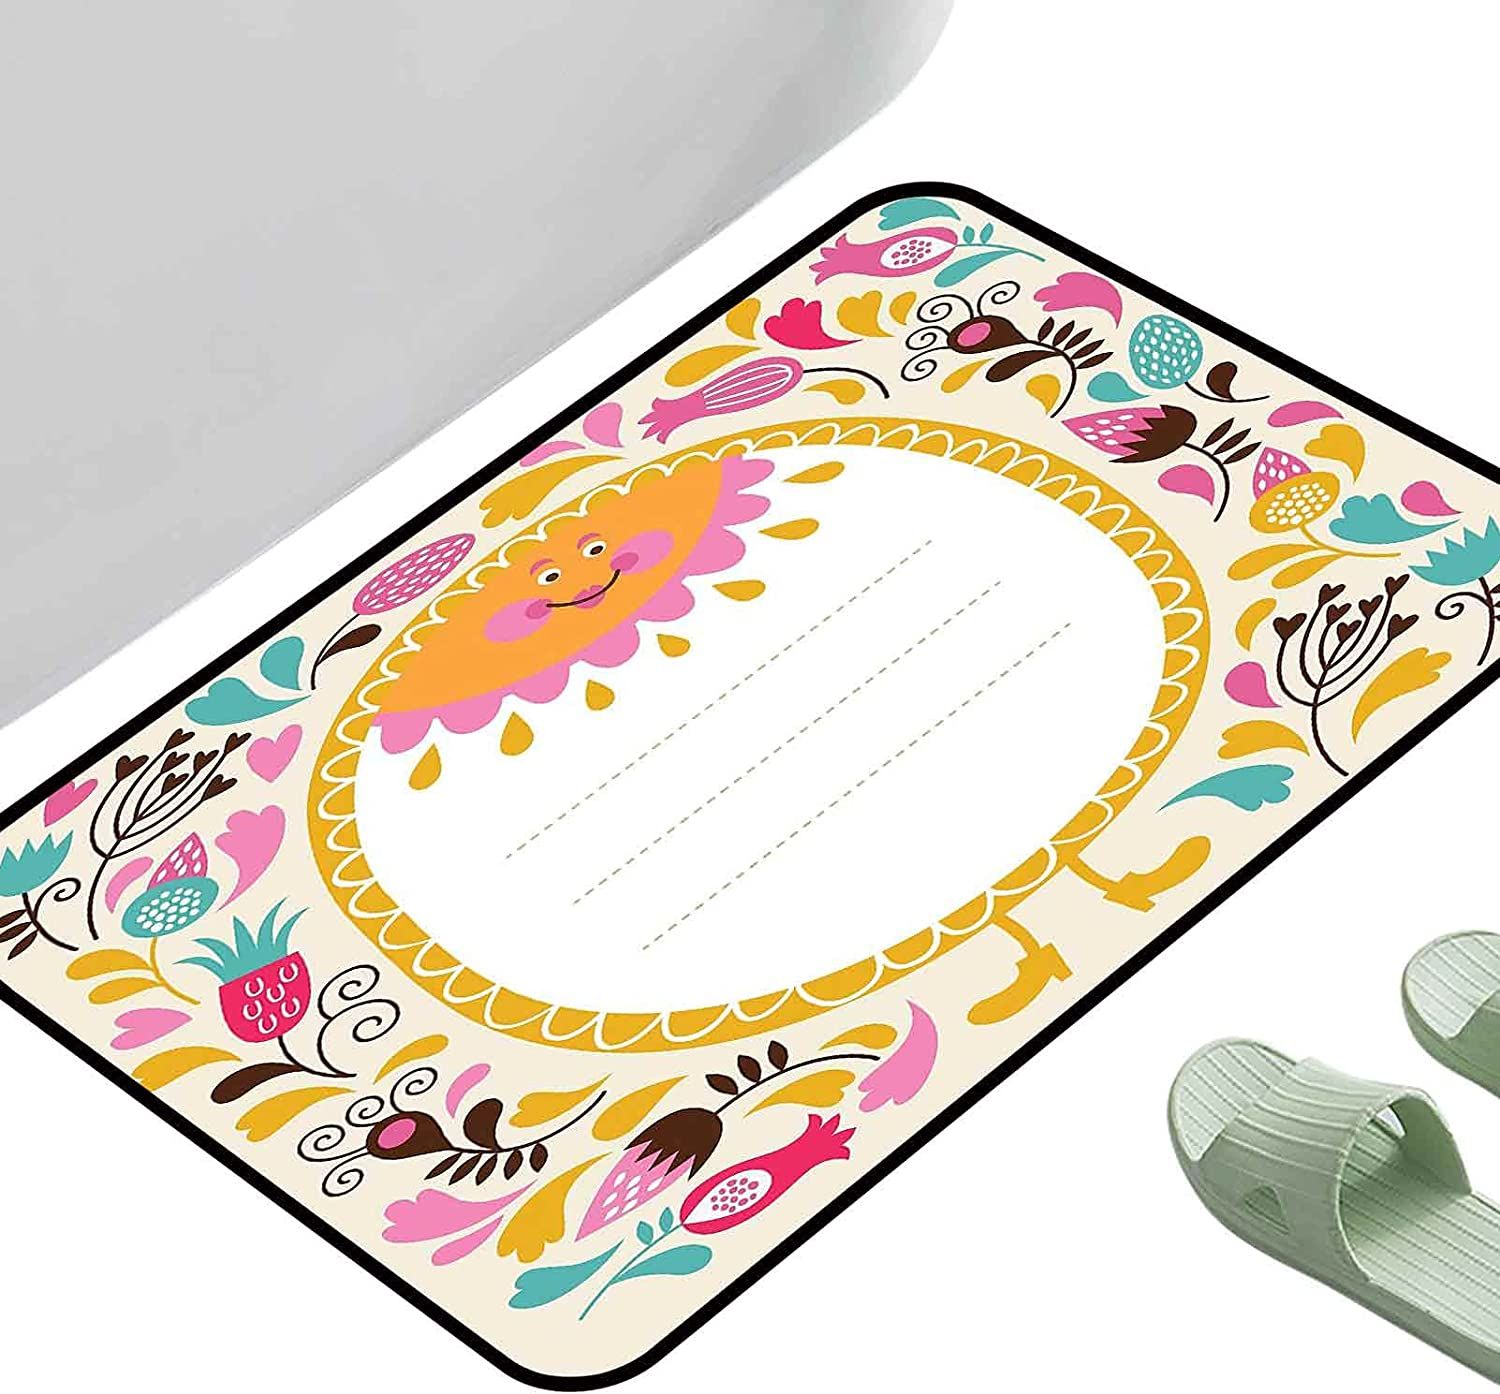 Door Carpet Area Rugs Kids Party Doodle Natural Ele Style Max 49% OFF Floral Japan Maker New